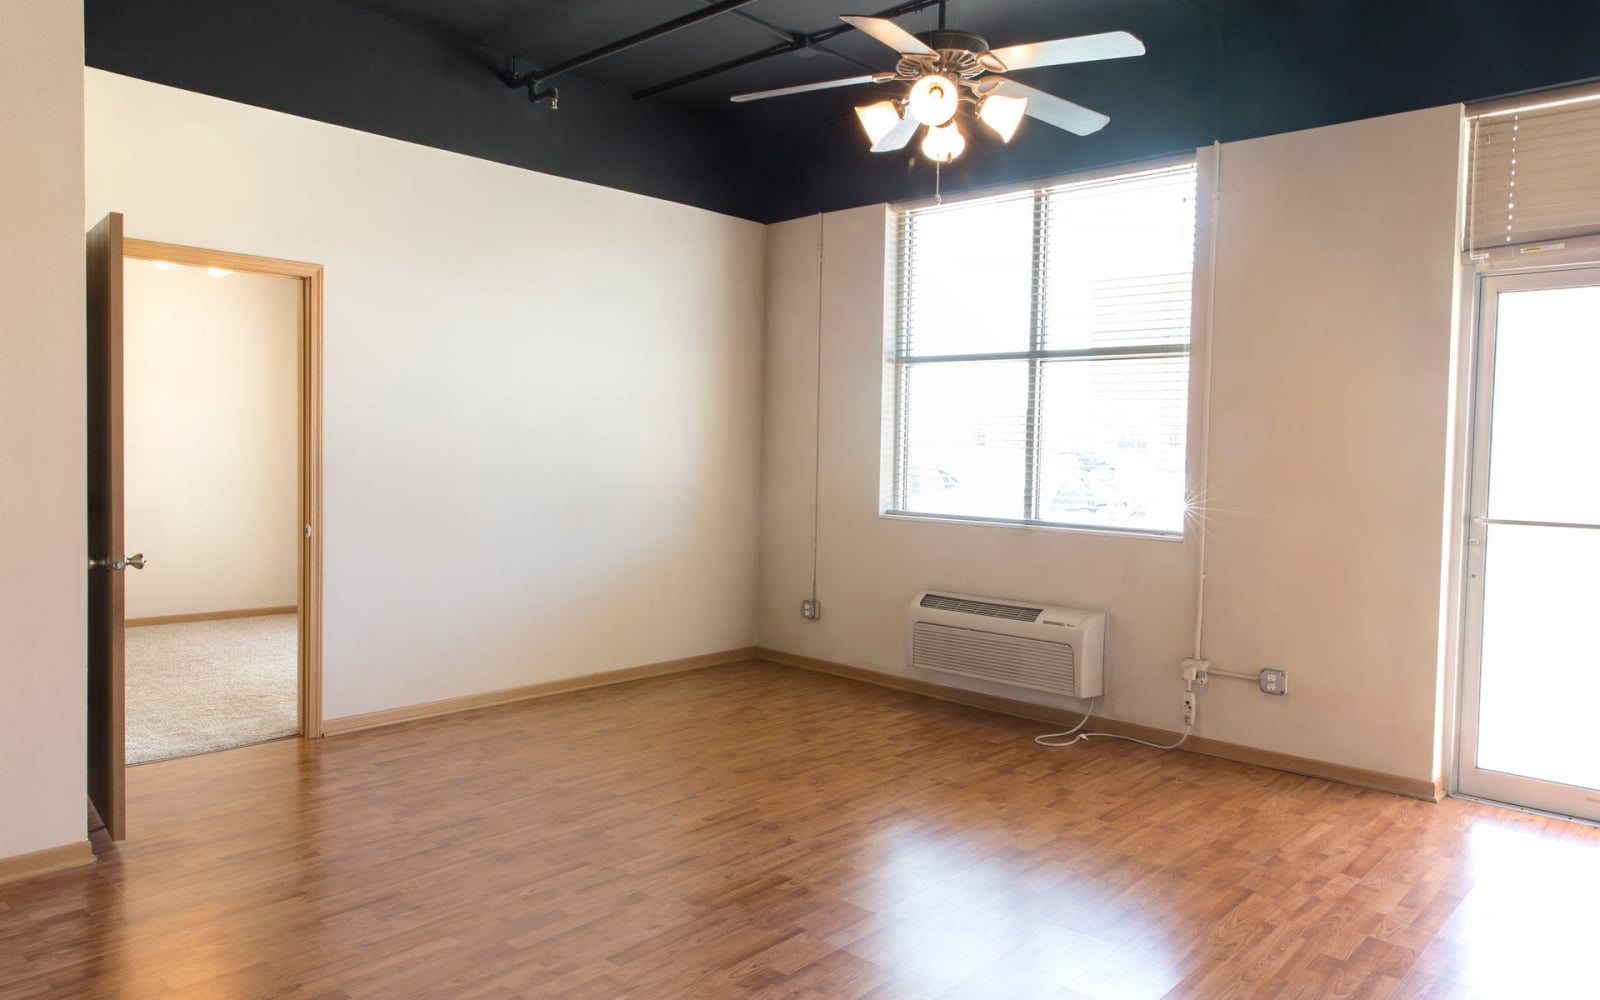 Living room with air conditioning in a single bedroom apartment at West Towne in Ames, Iowa